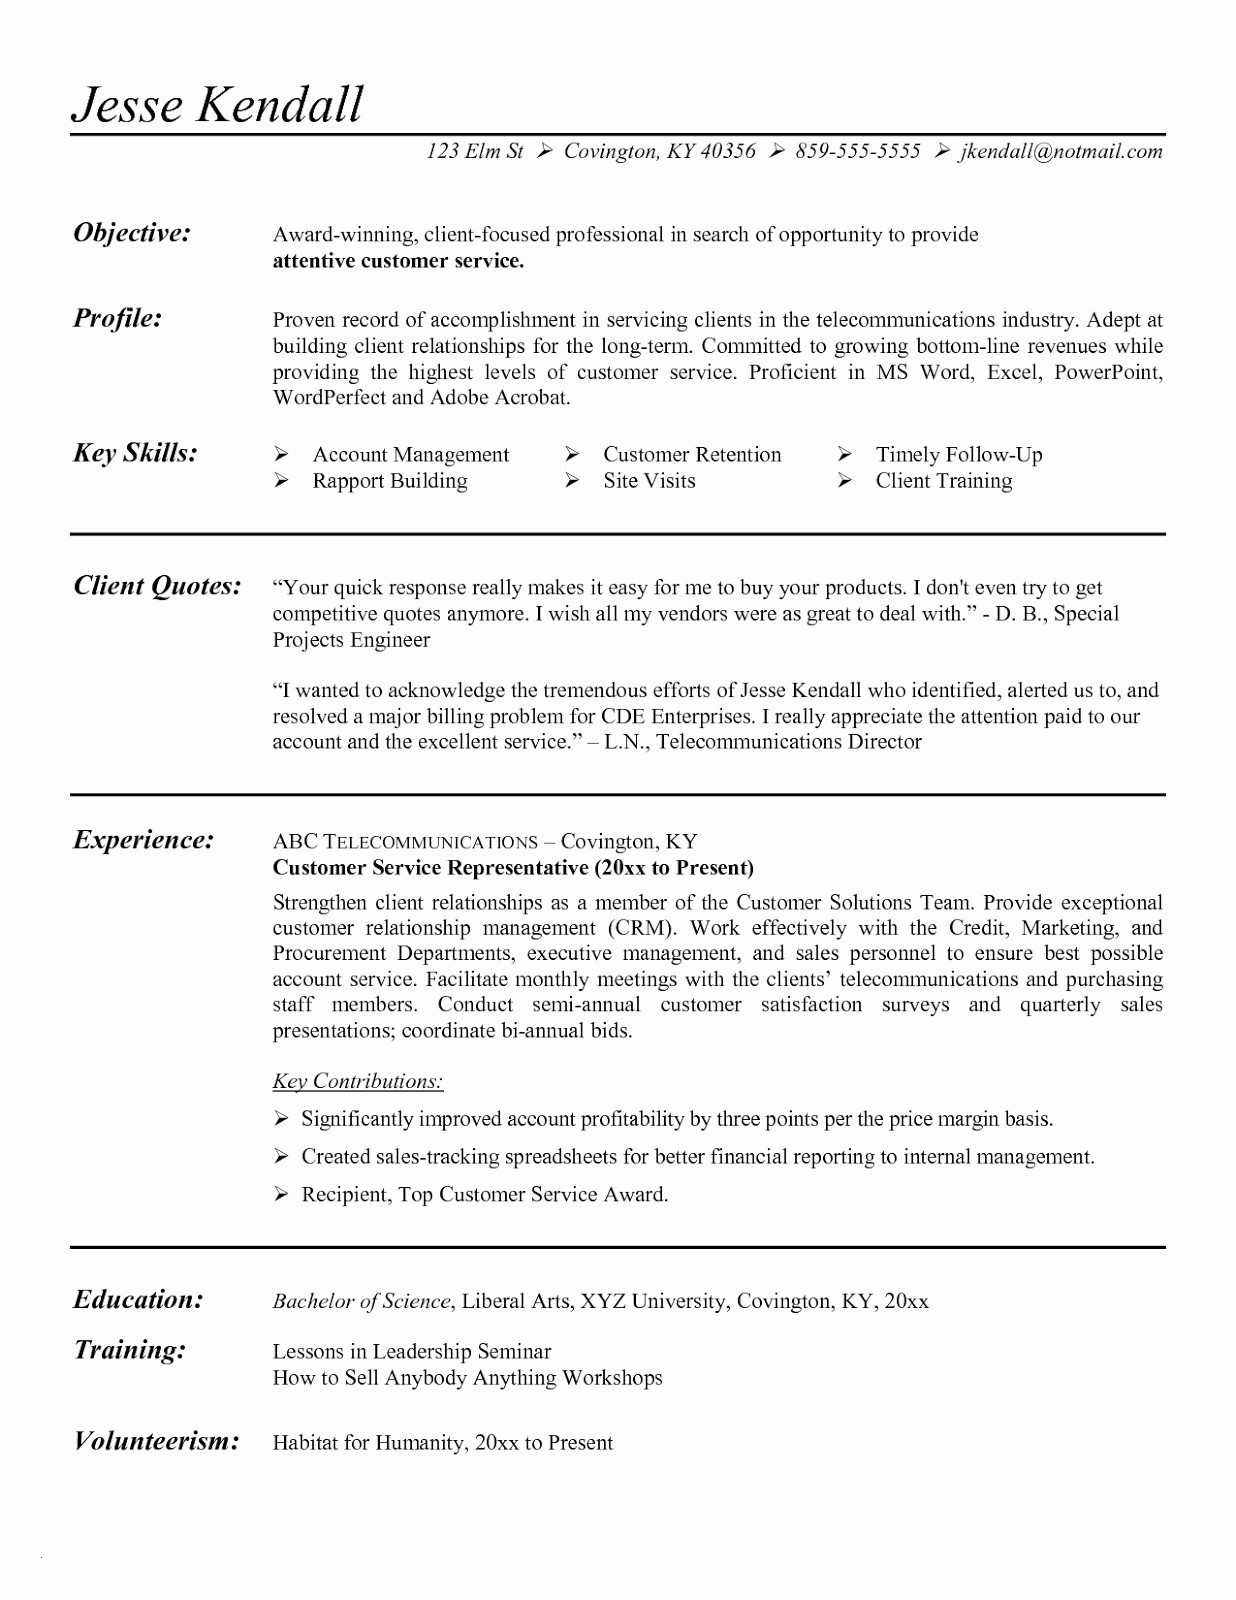 pharmacy technician job description for resume example-Pharmacy Technician Job Duties Resume Example Pharmacist Resume Template Legalsocialmobilitypartnership 5-s